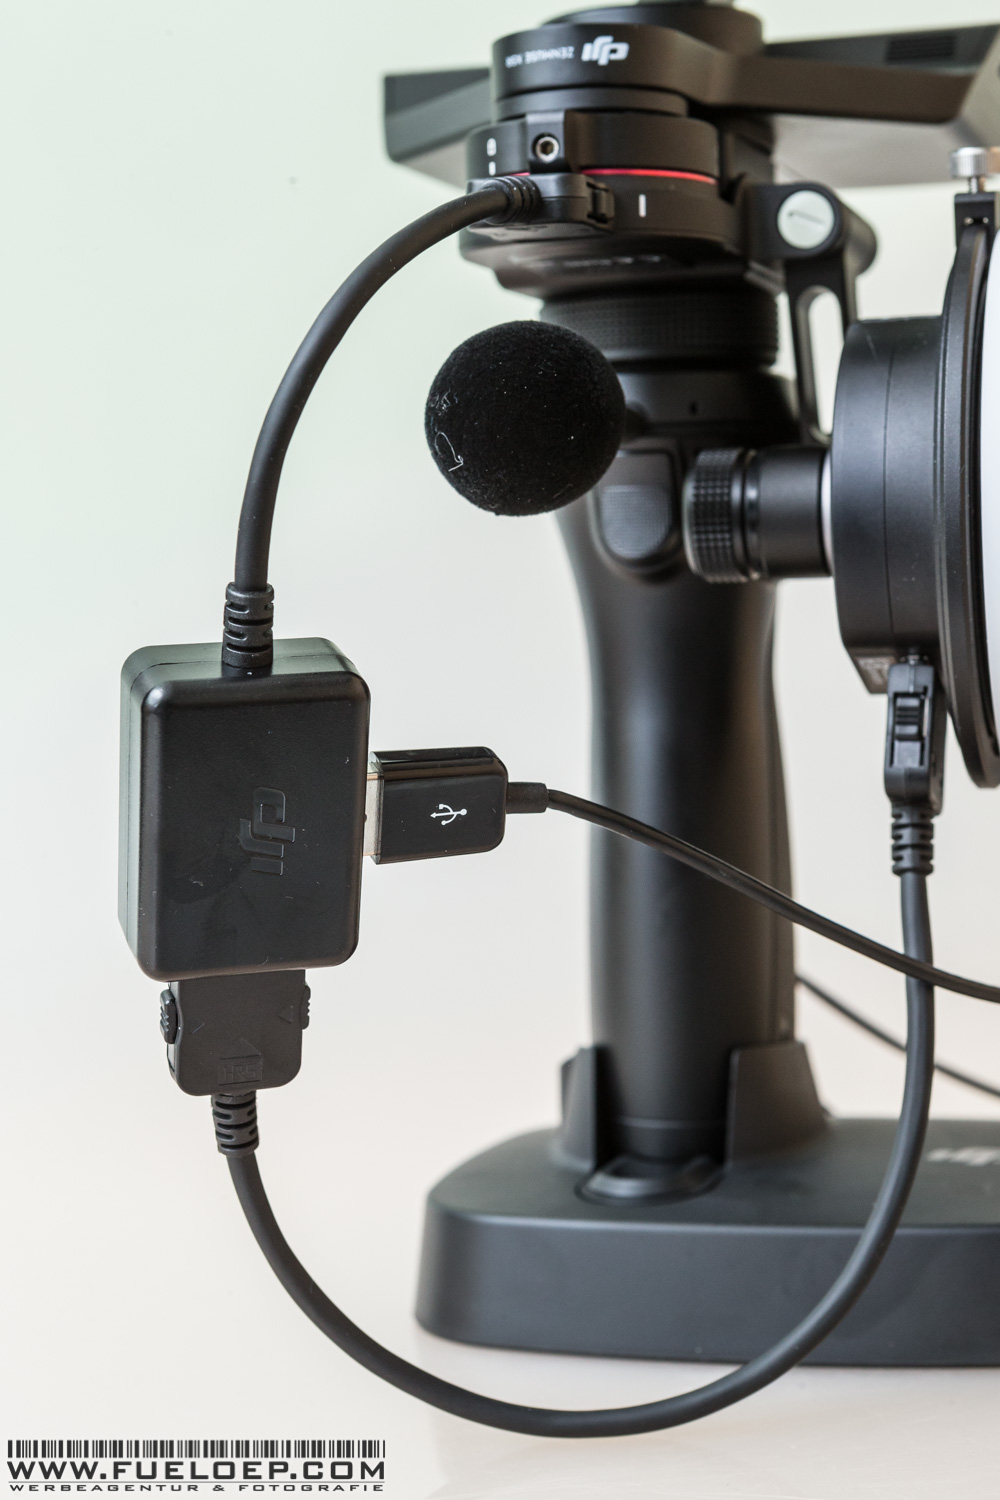 Mounted to the OSMO RAW